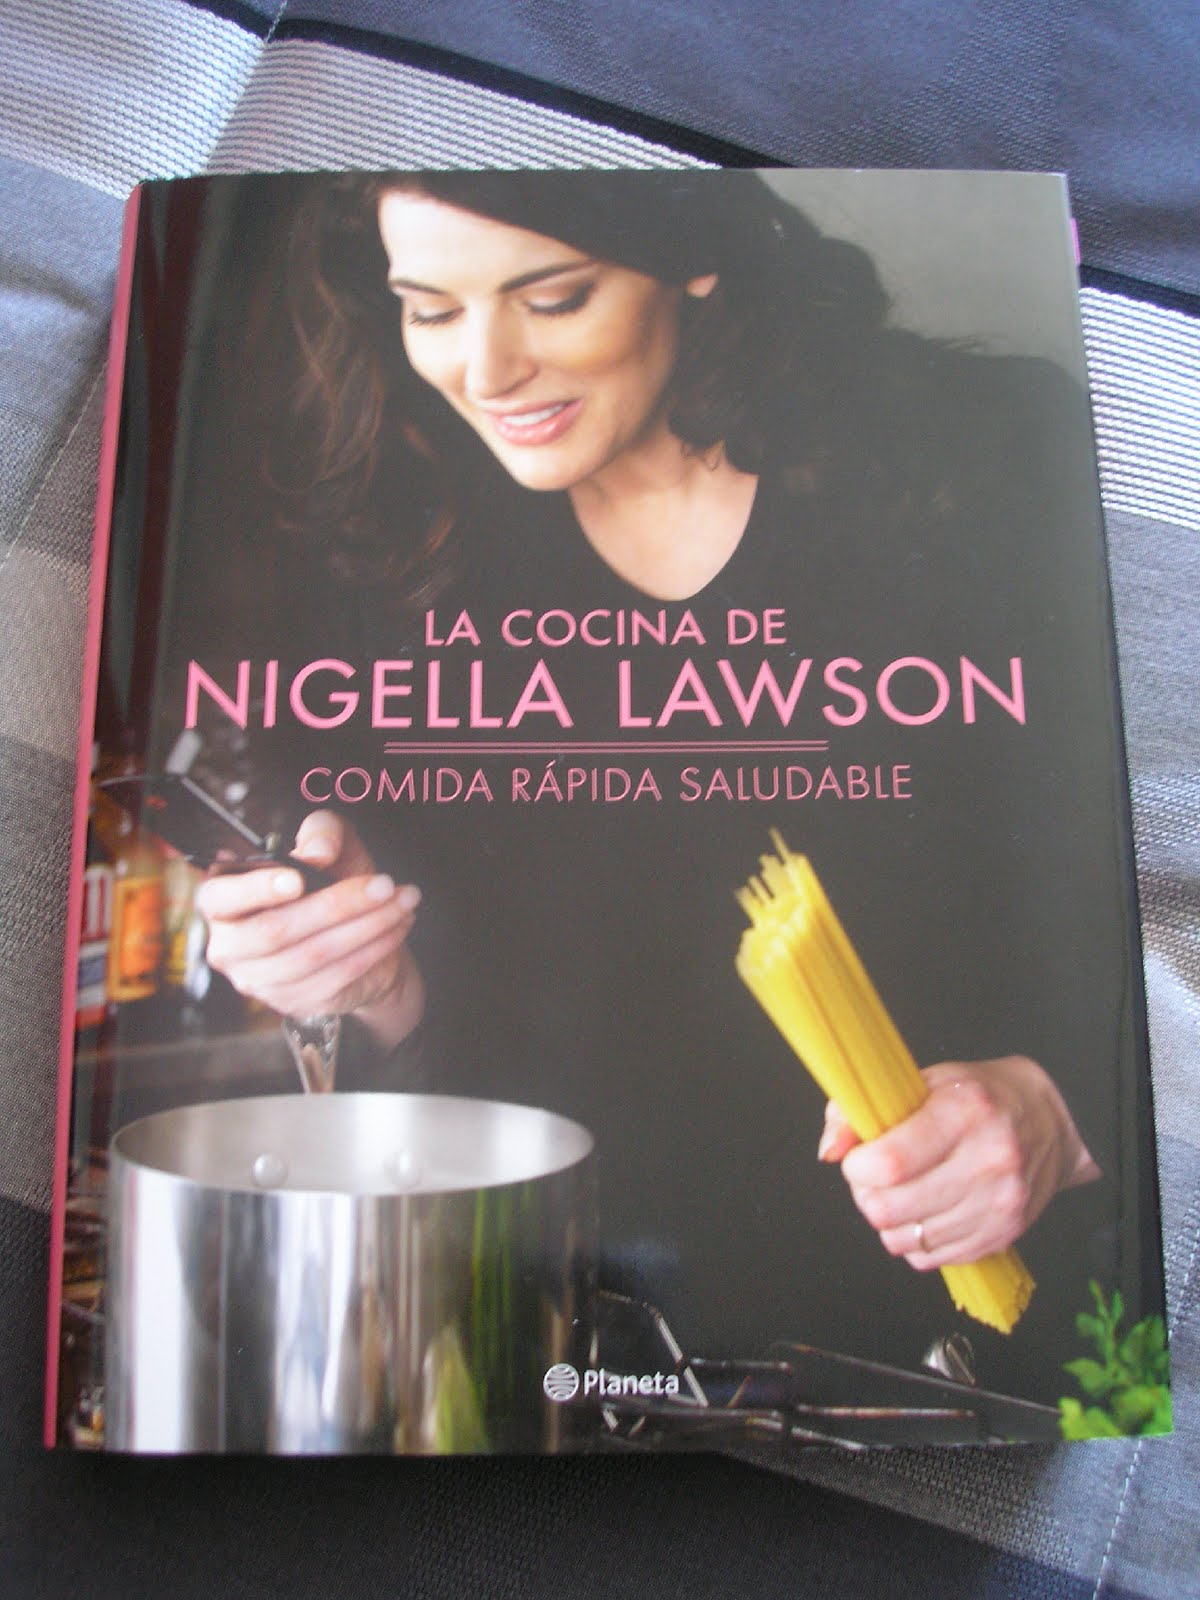 love cooking la cocina de nigella lawson